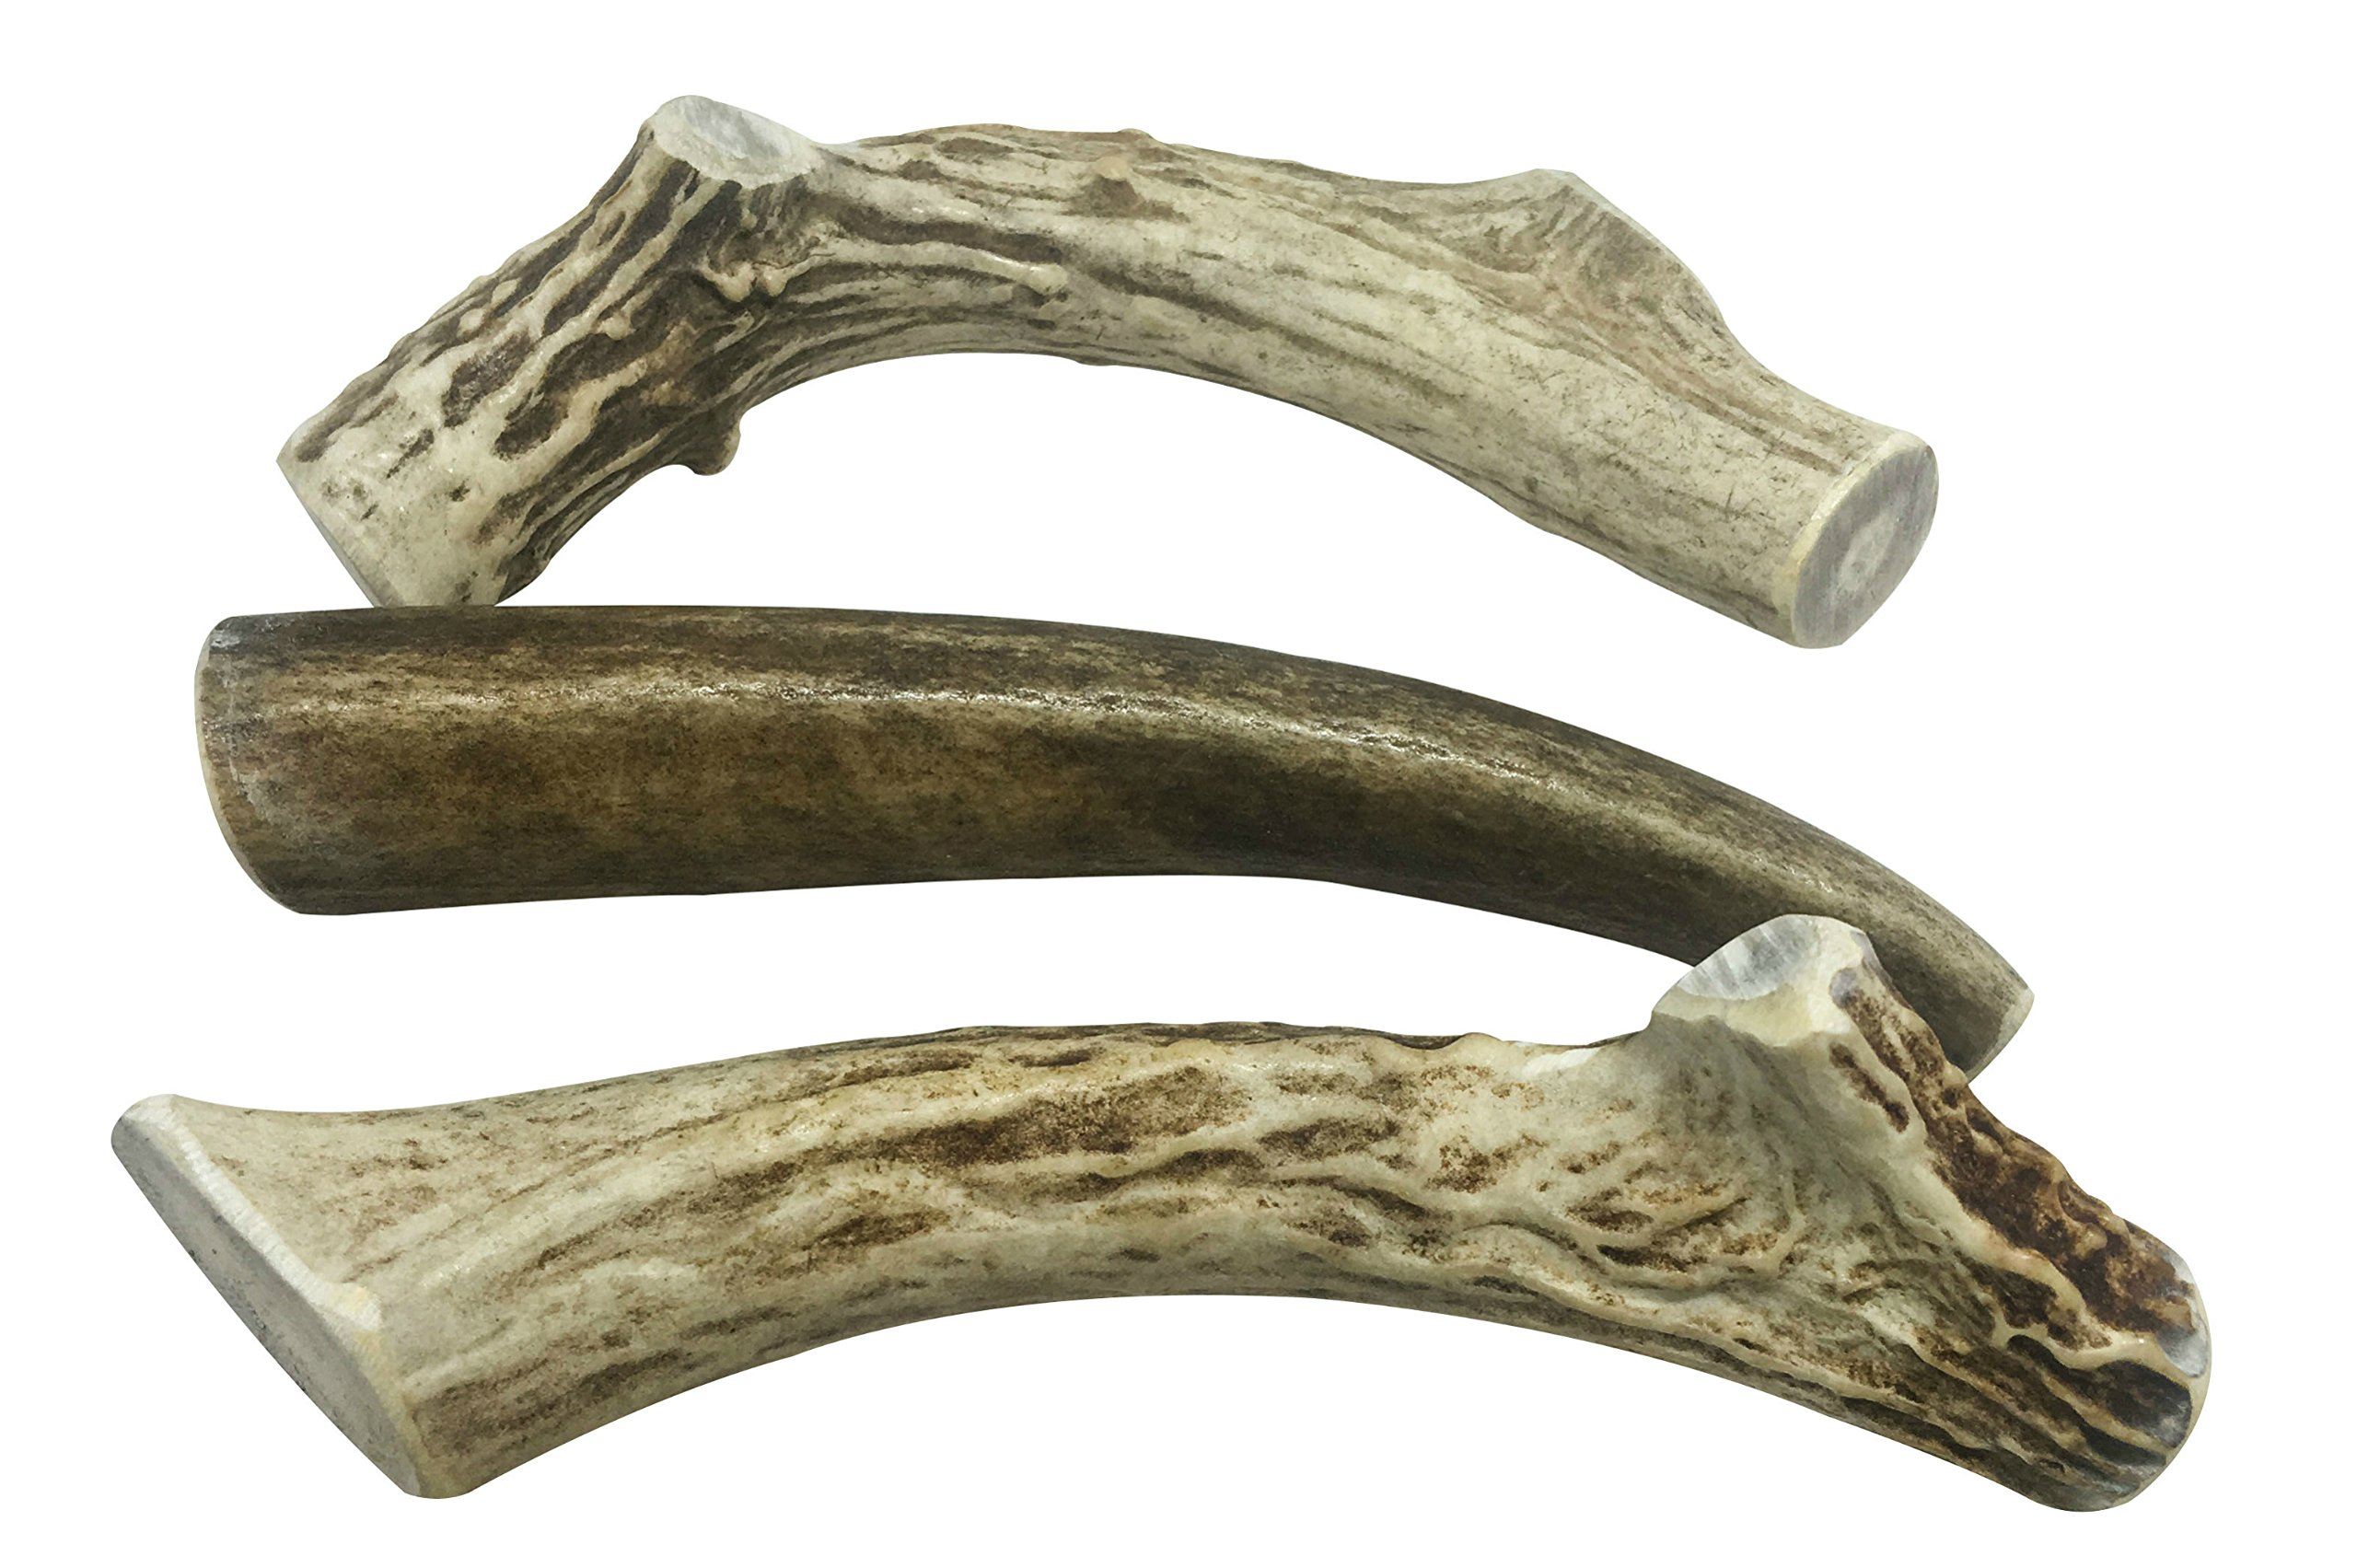 WhiteTail Naturals 3 Pack- Deer Antler Dog Chews Medium 5 to 6 Inches Long. by WhiteTail Naturals